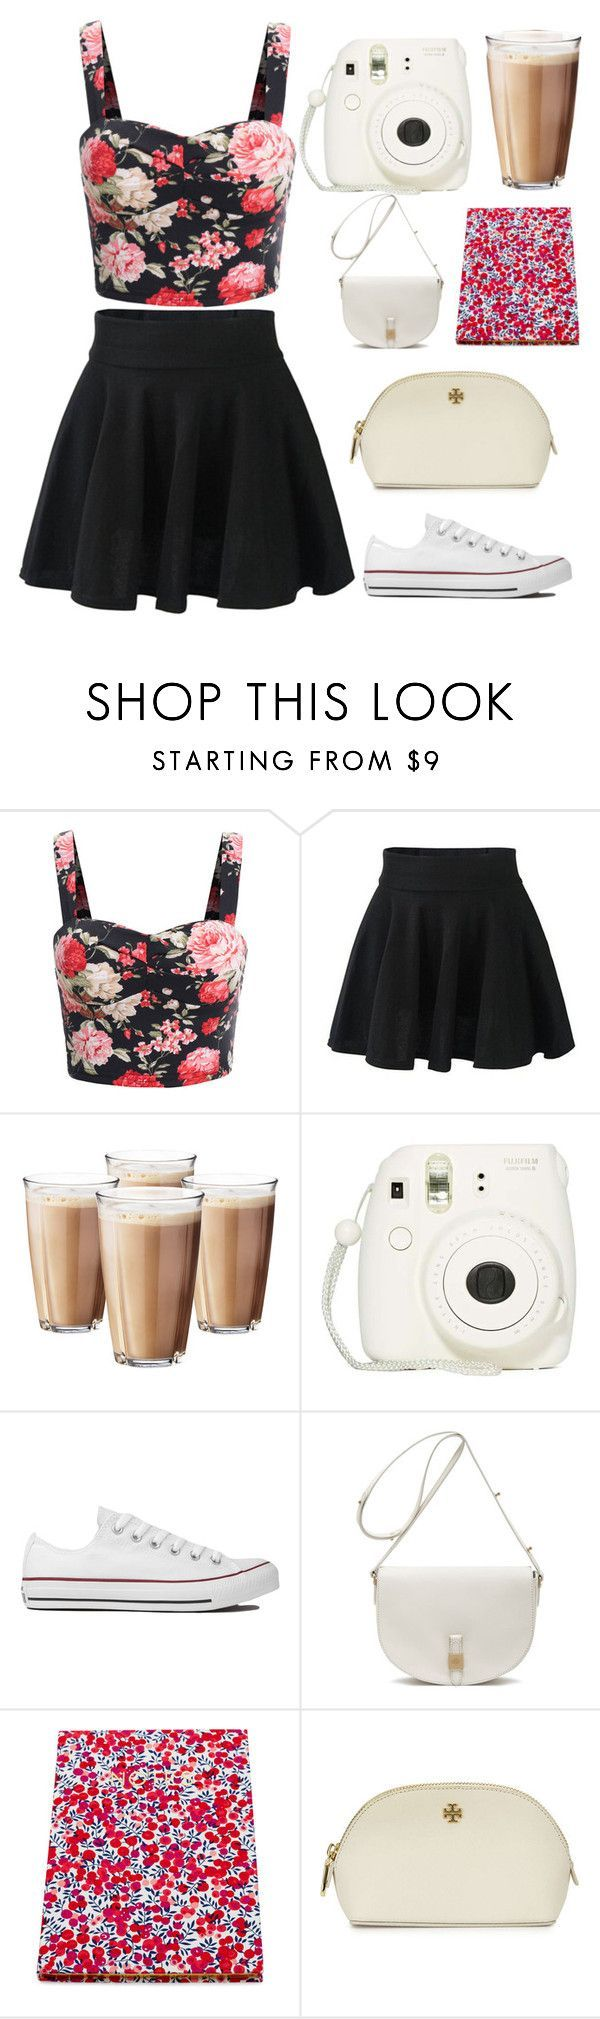 """""""Summer"""" by queenlateen ❤ liked on Polyvore featuring Rosendahl, Converse, Mulberry, Flowers of Liberty and Tory Burch"""